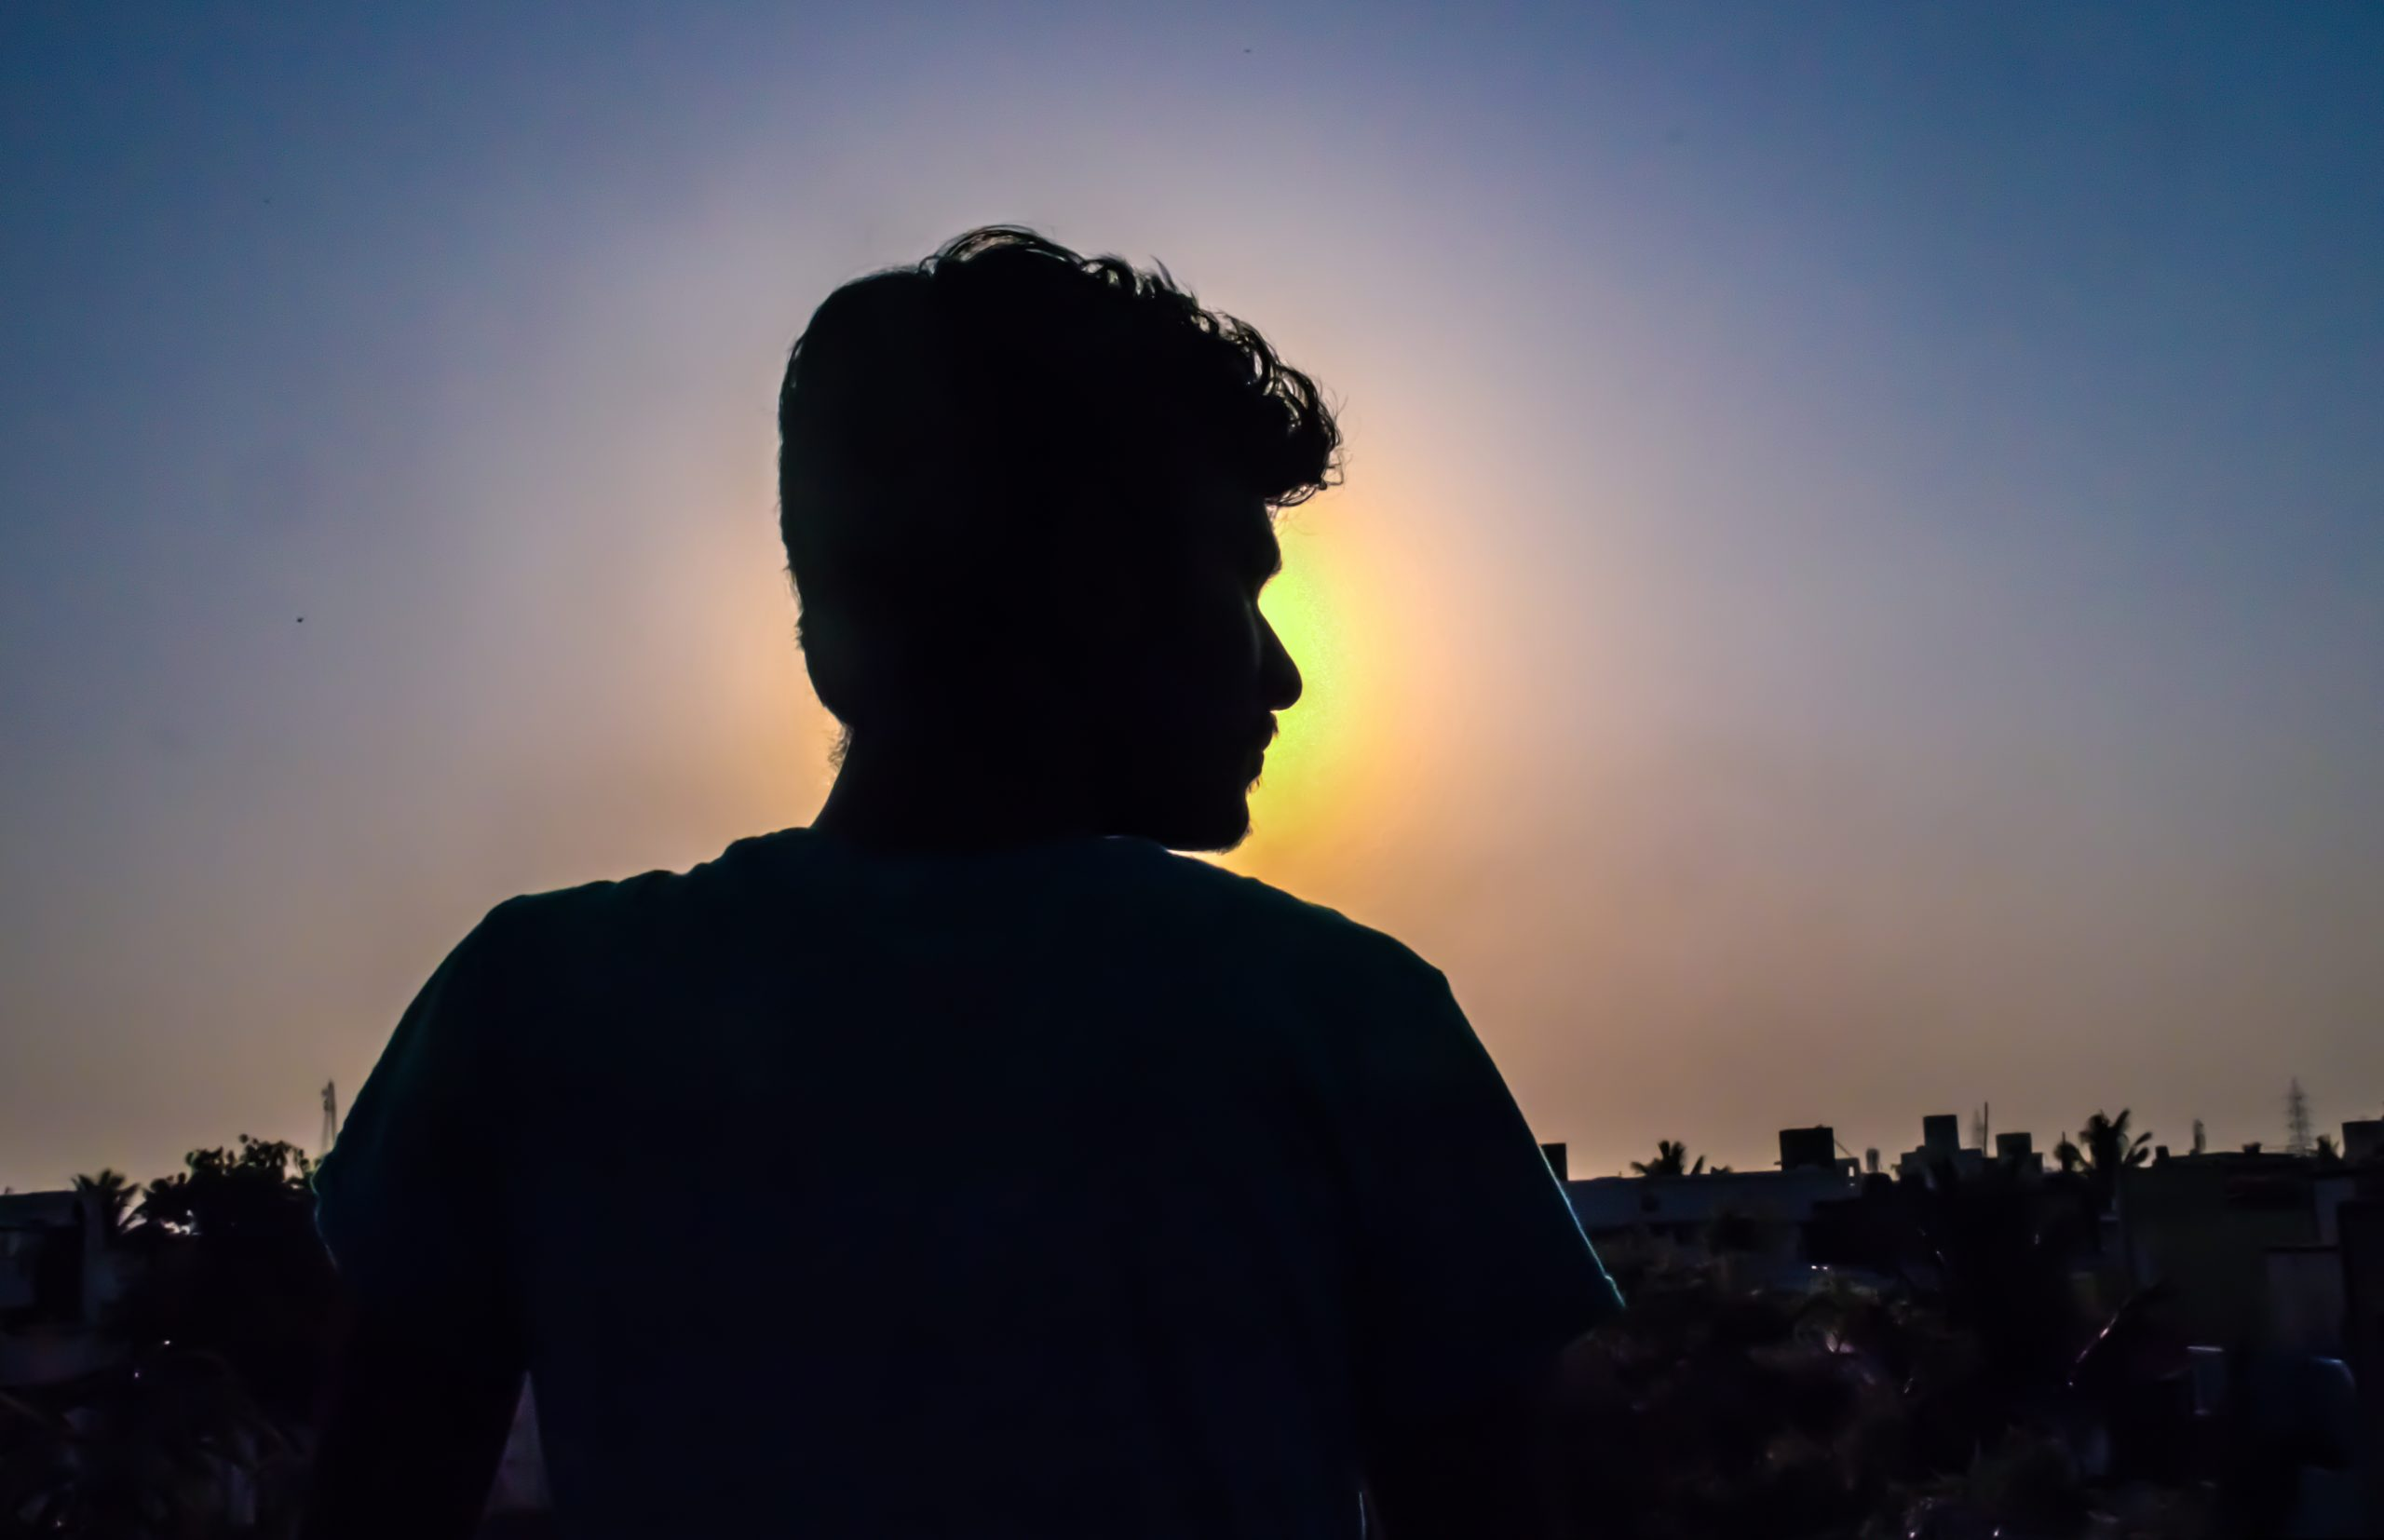 silhouette of man against the sun